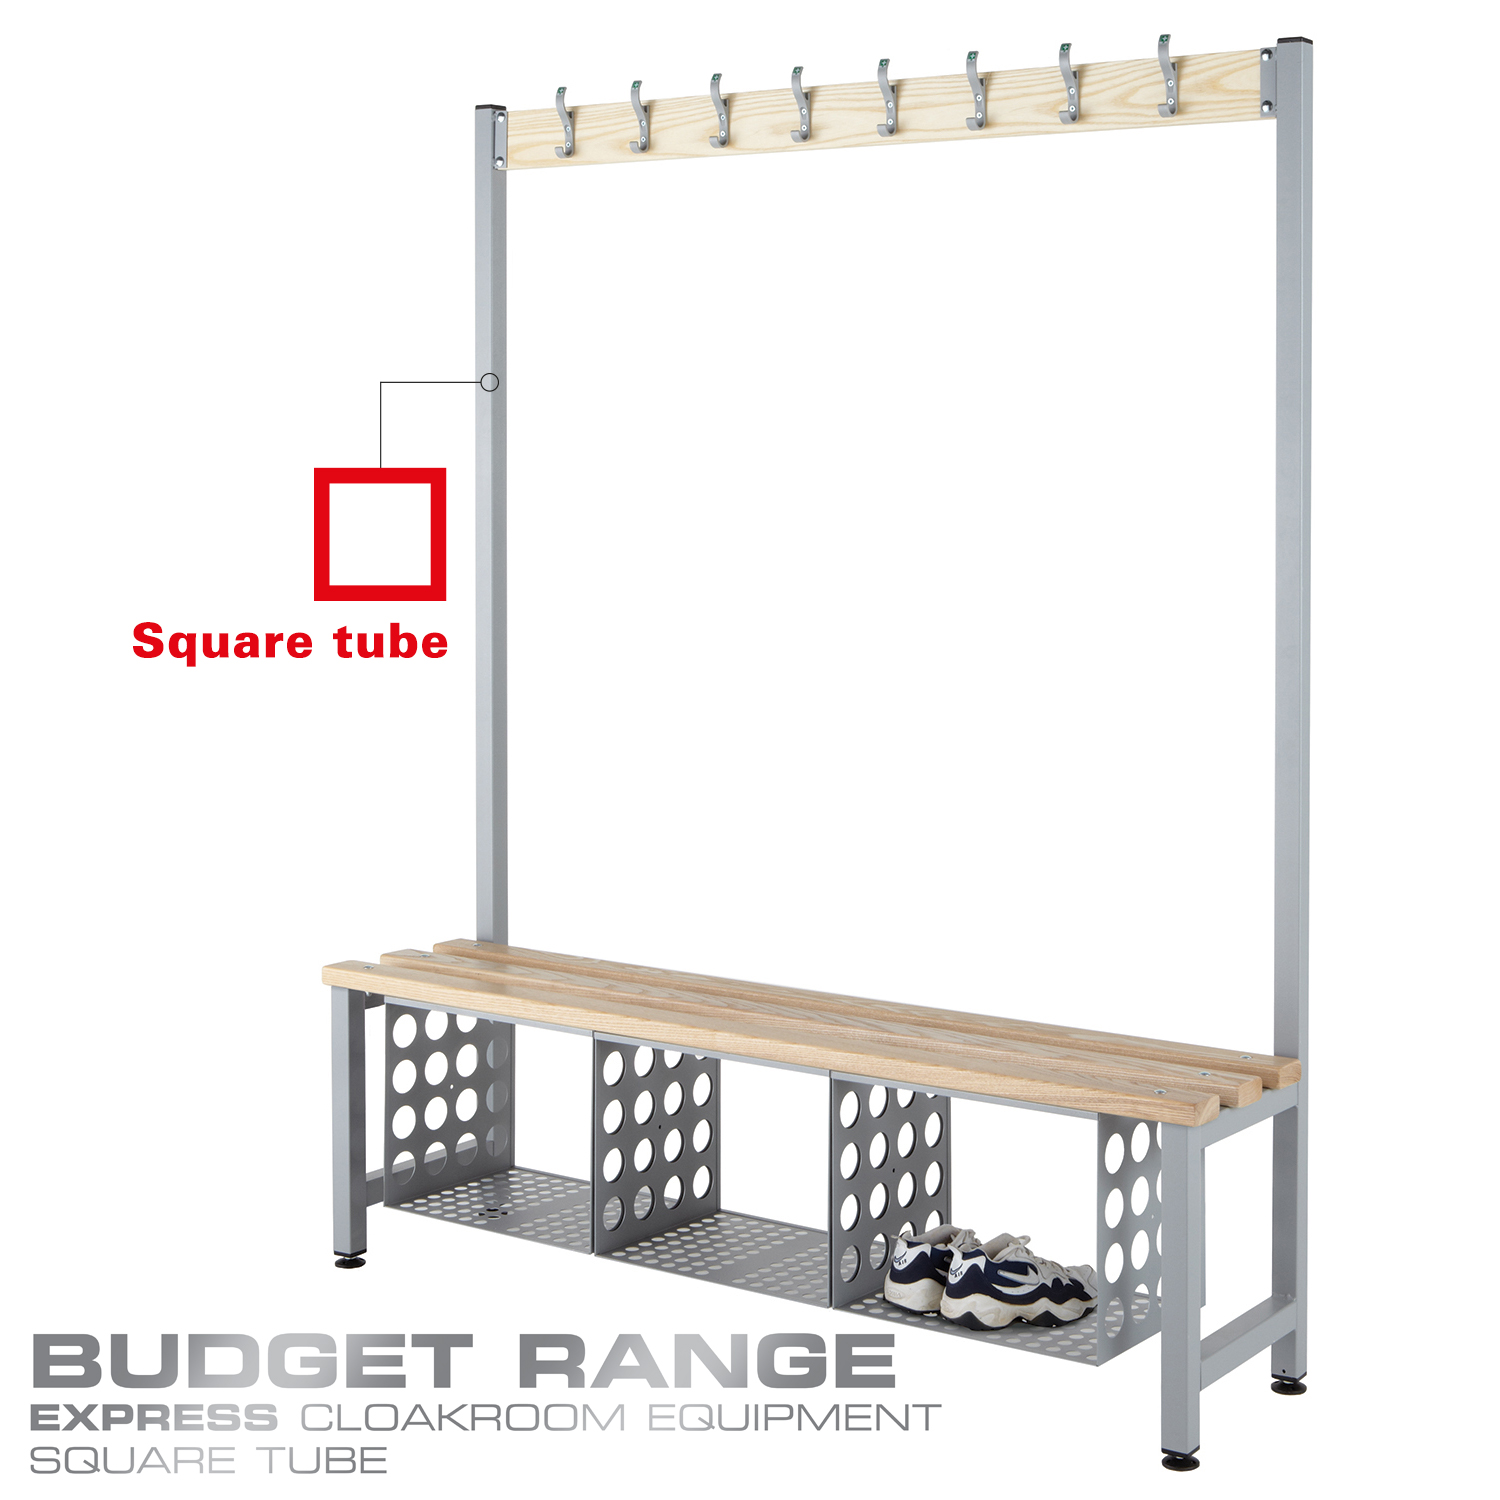 Probe cloakroom budget wood bench with basket single sided